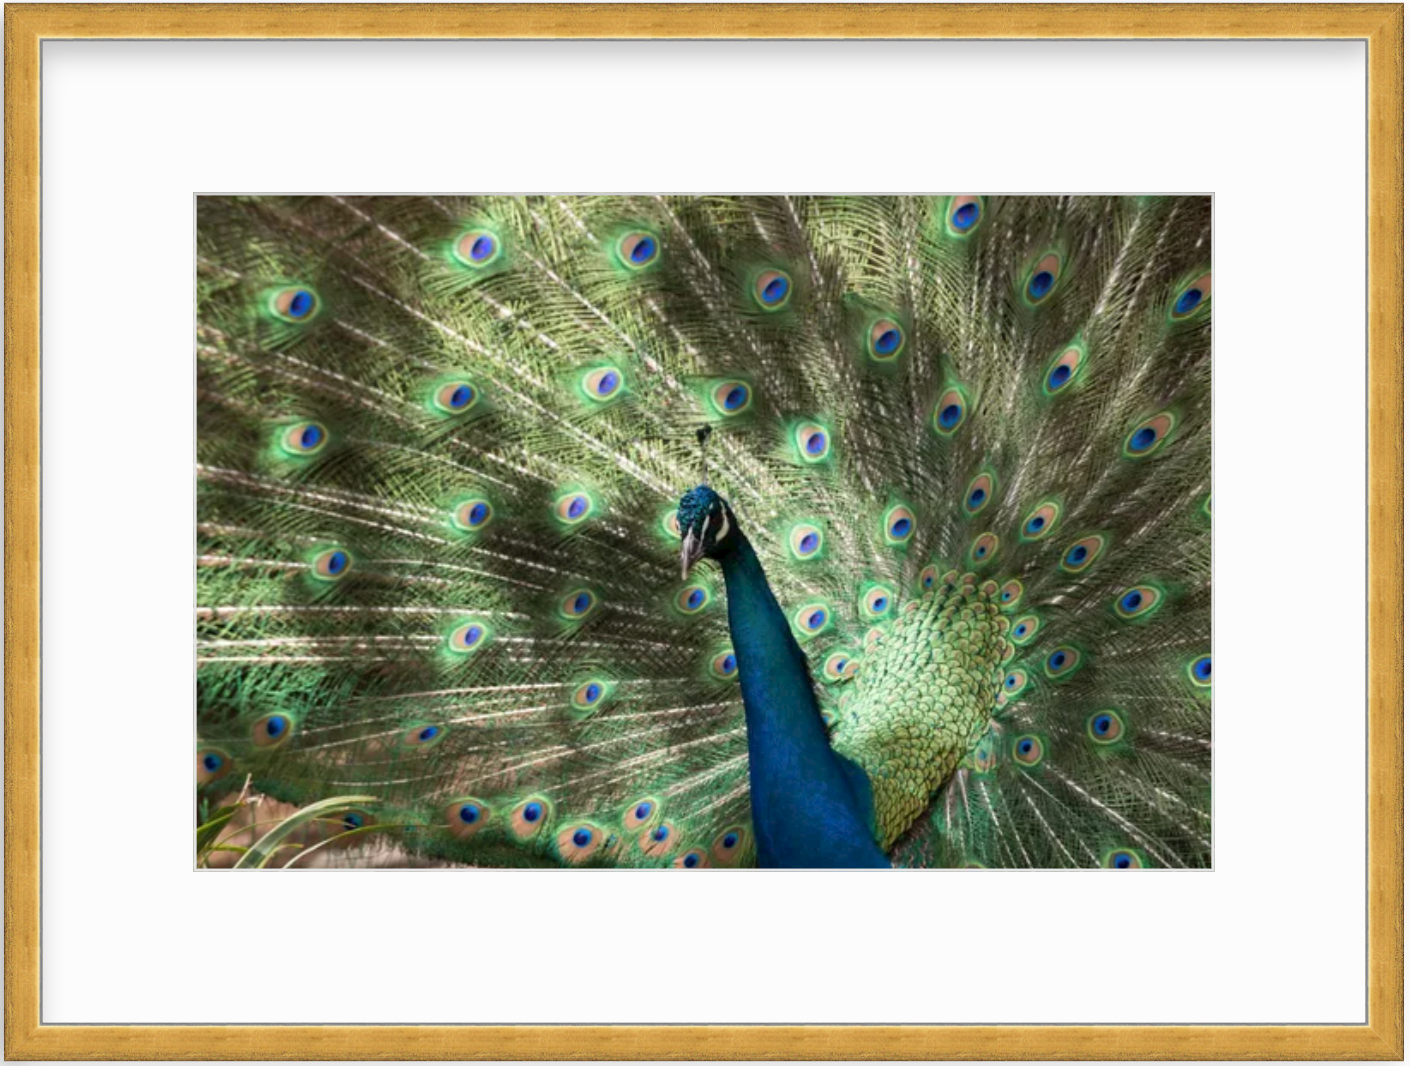 photo of peacock in gold frame